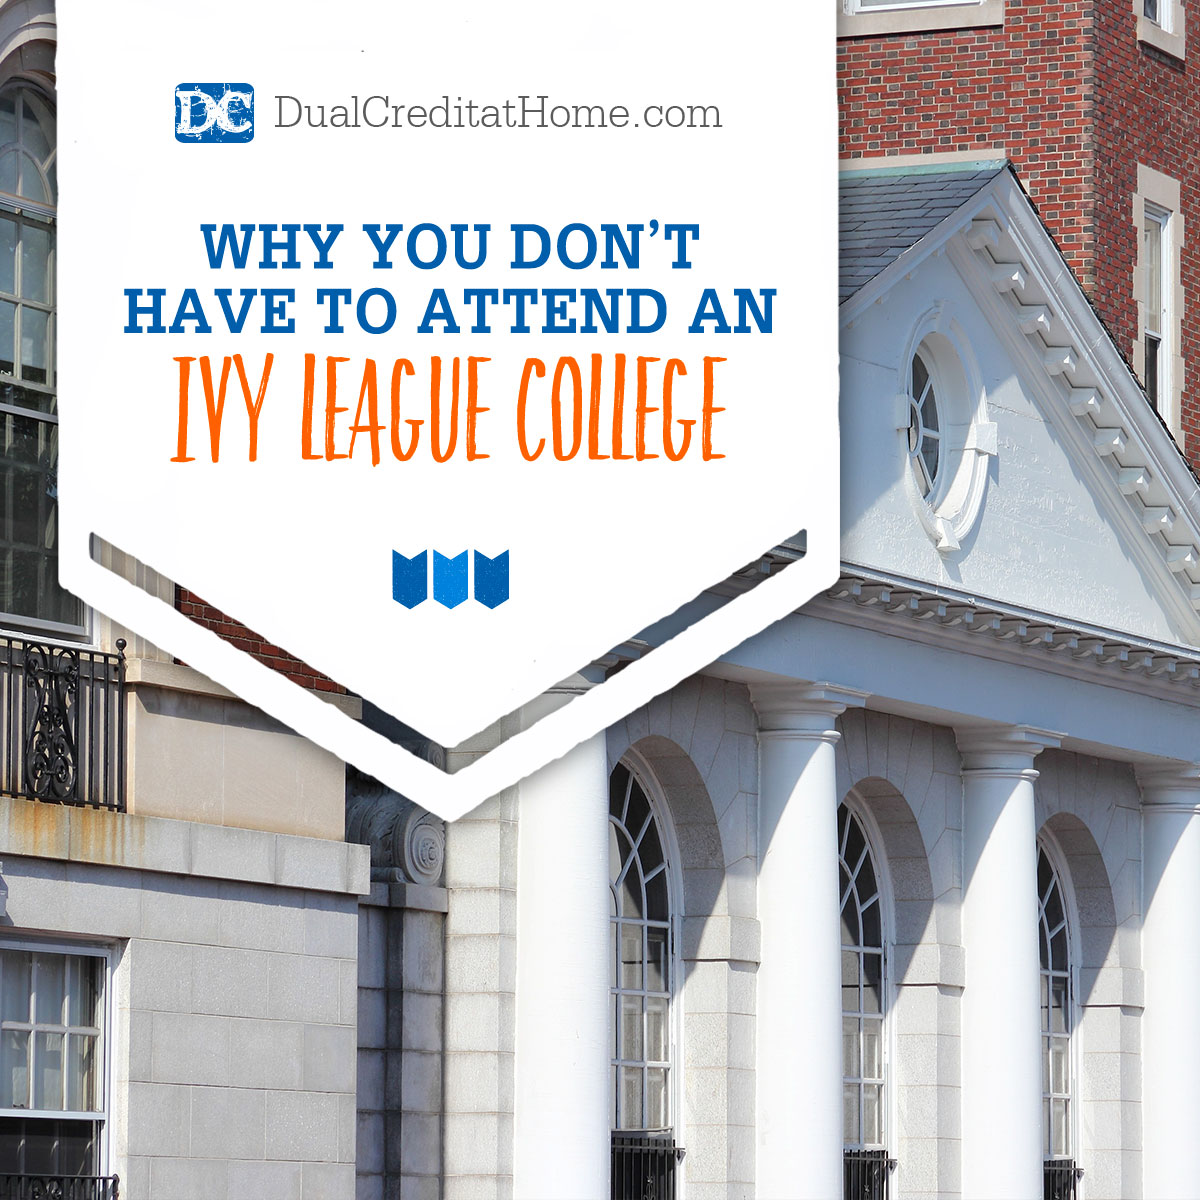 Why You Don't Have to Attend an Ivy League College